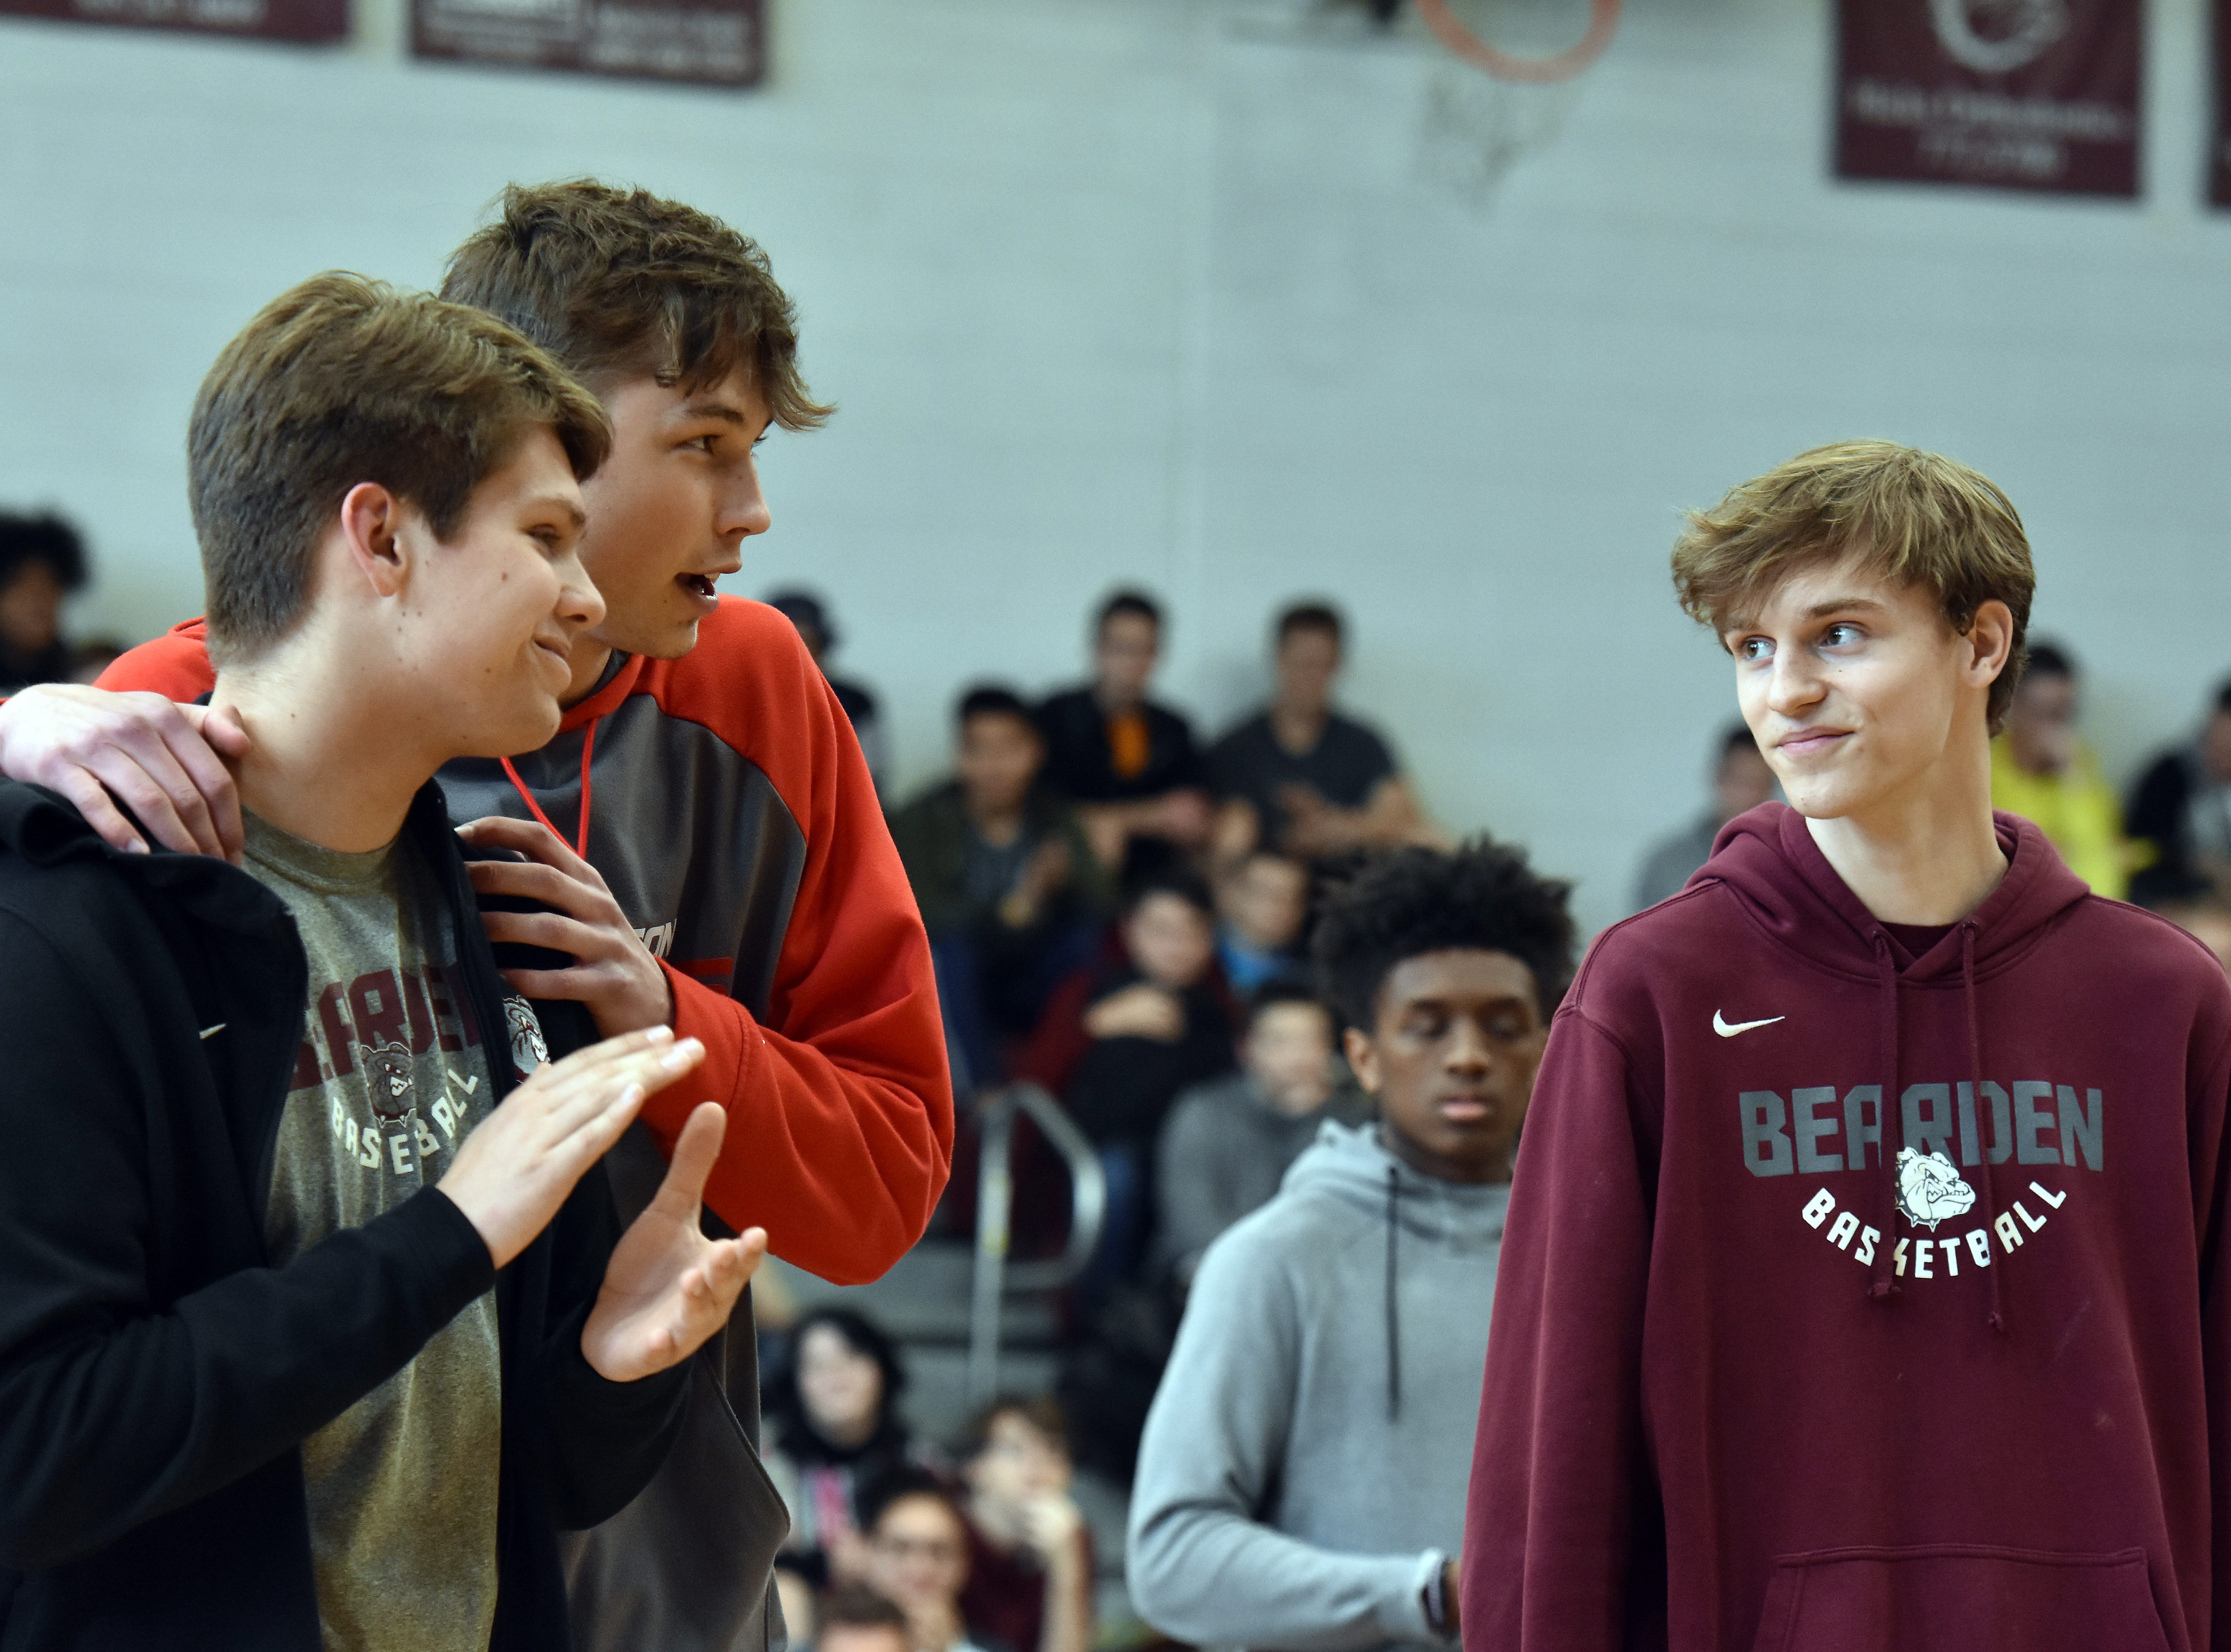 Drew Pember, second from left, hugs a teammate during the pep rally to celebrate the basketball team bringing home the state championship.